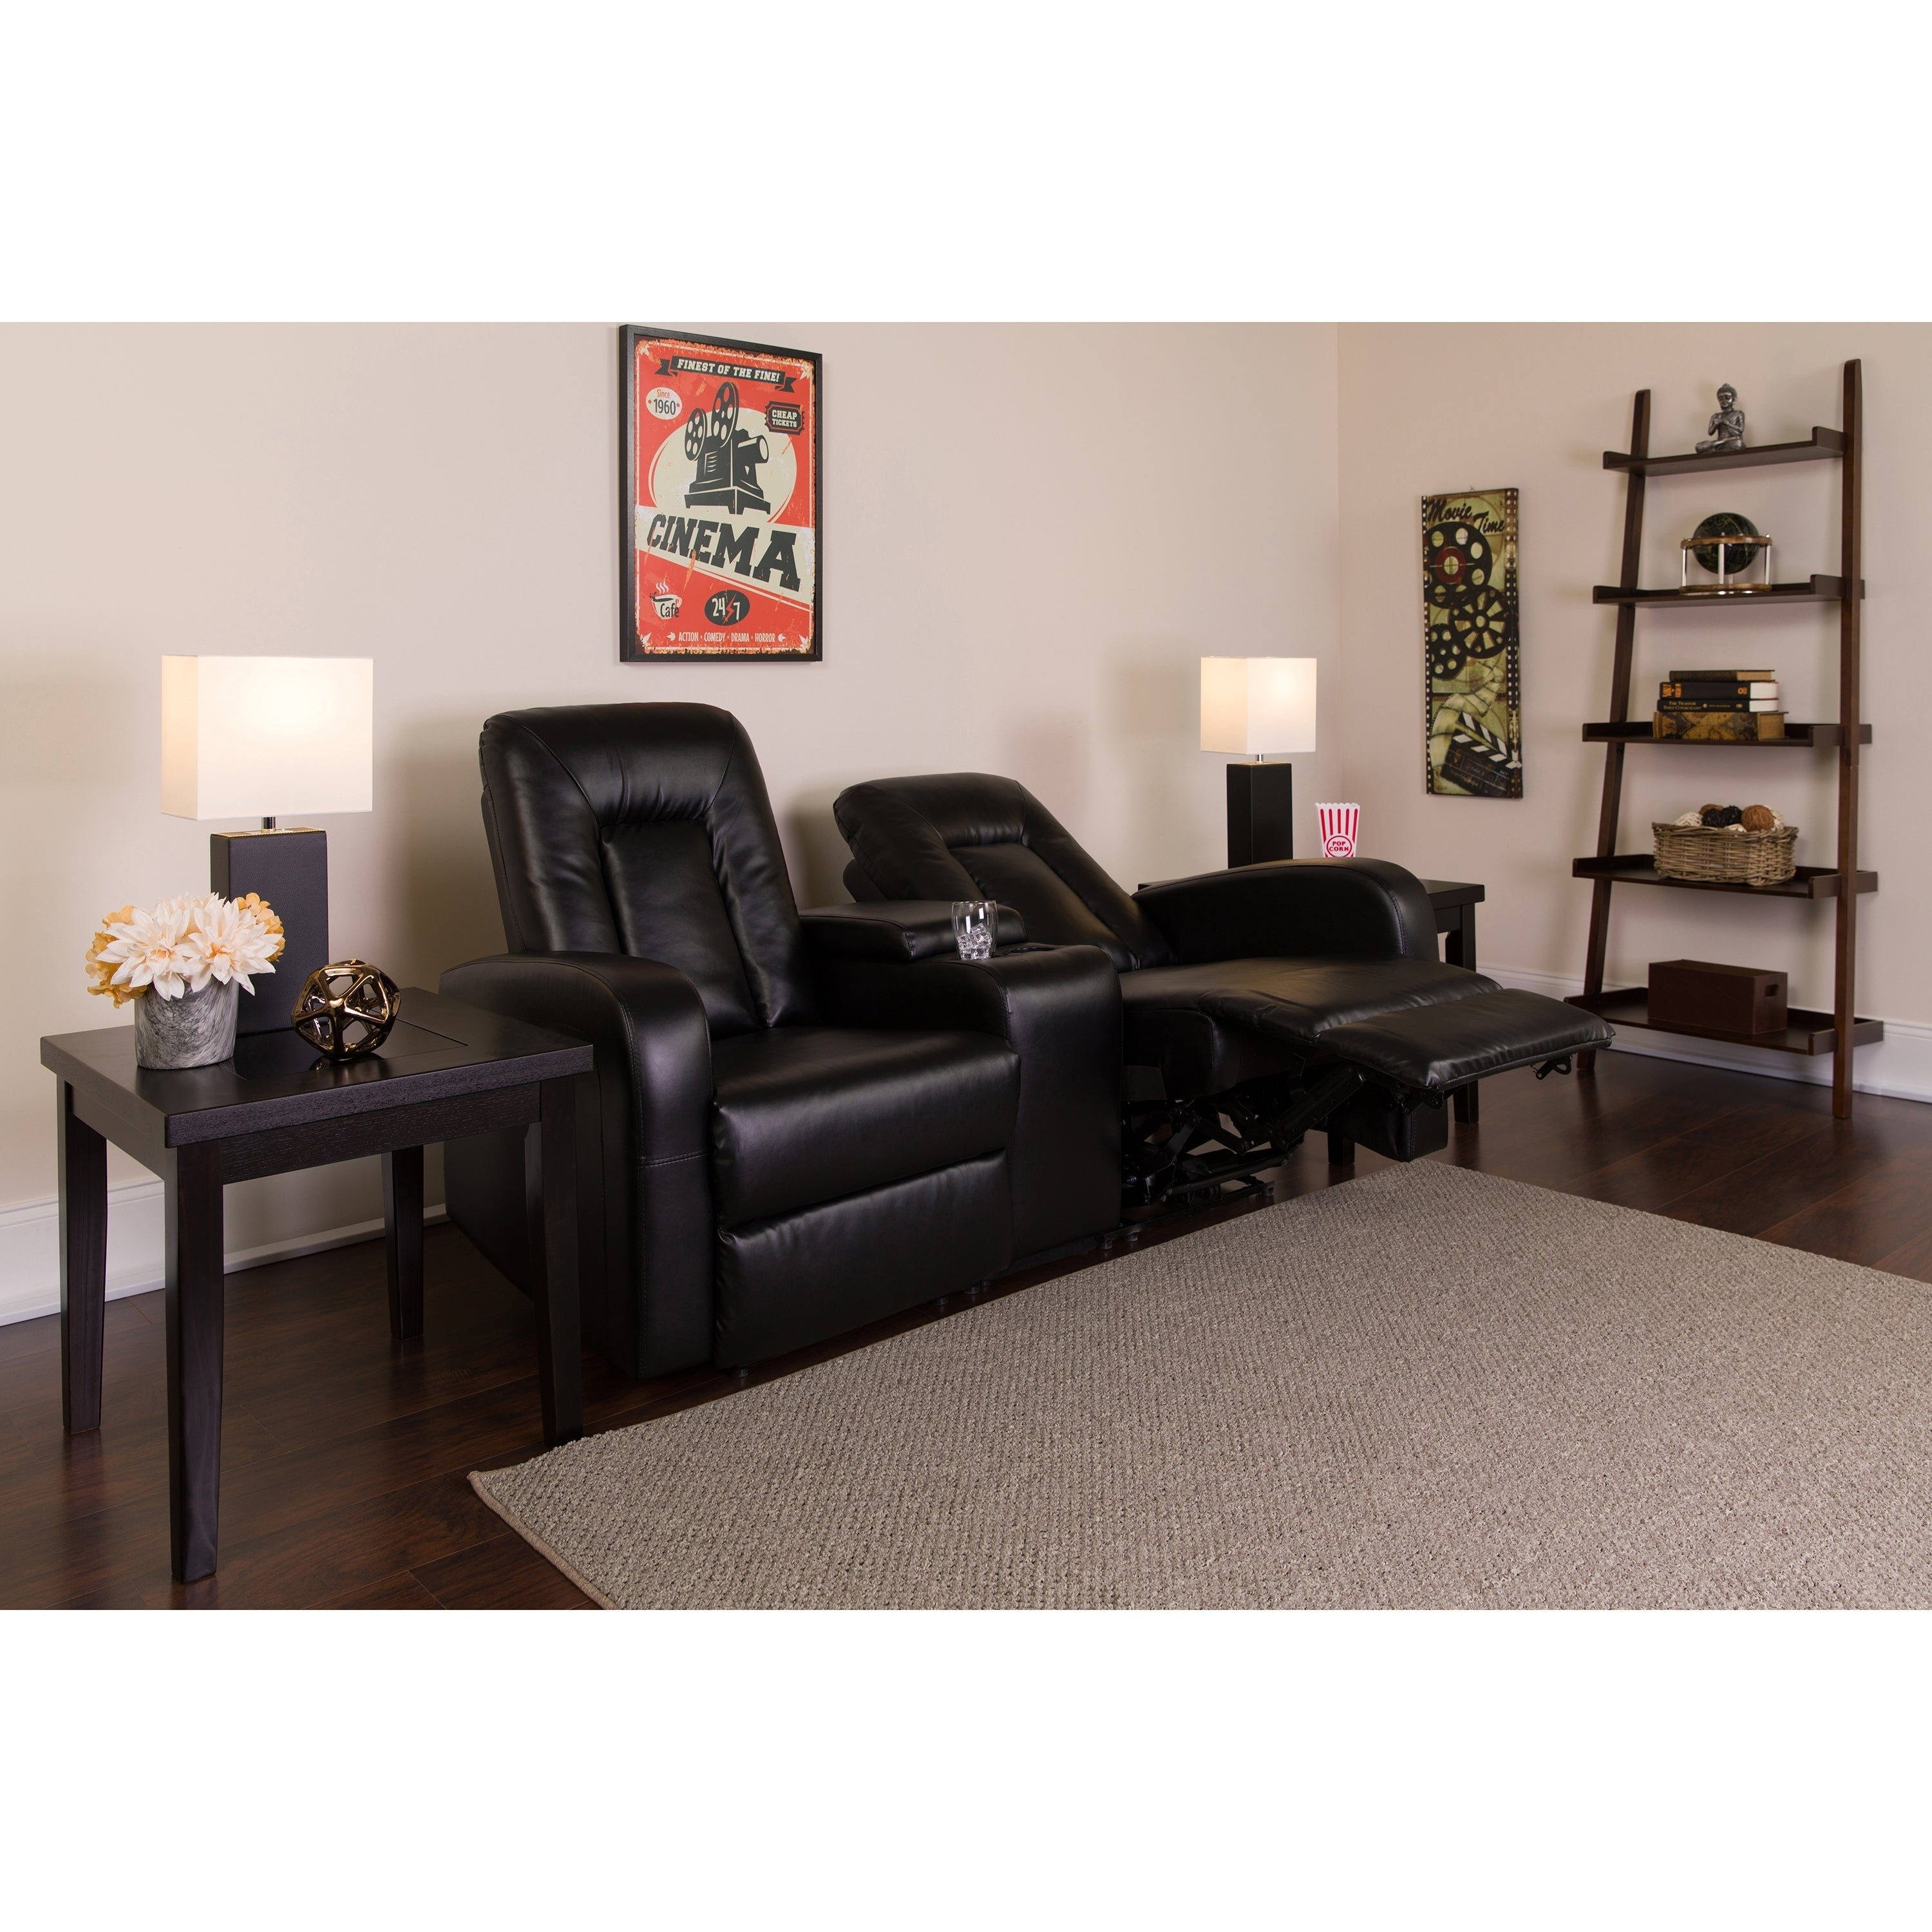 Lancaster Home Eclipse Series 2-Seat Reclining Black Leat...